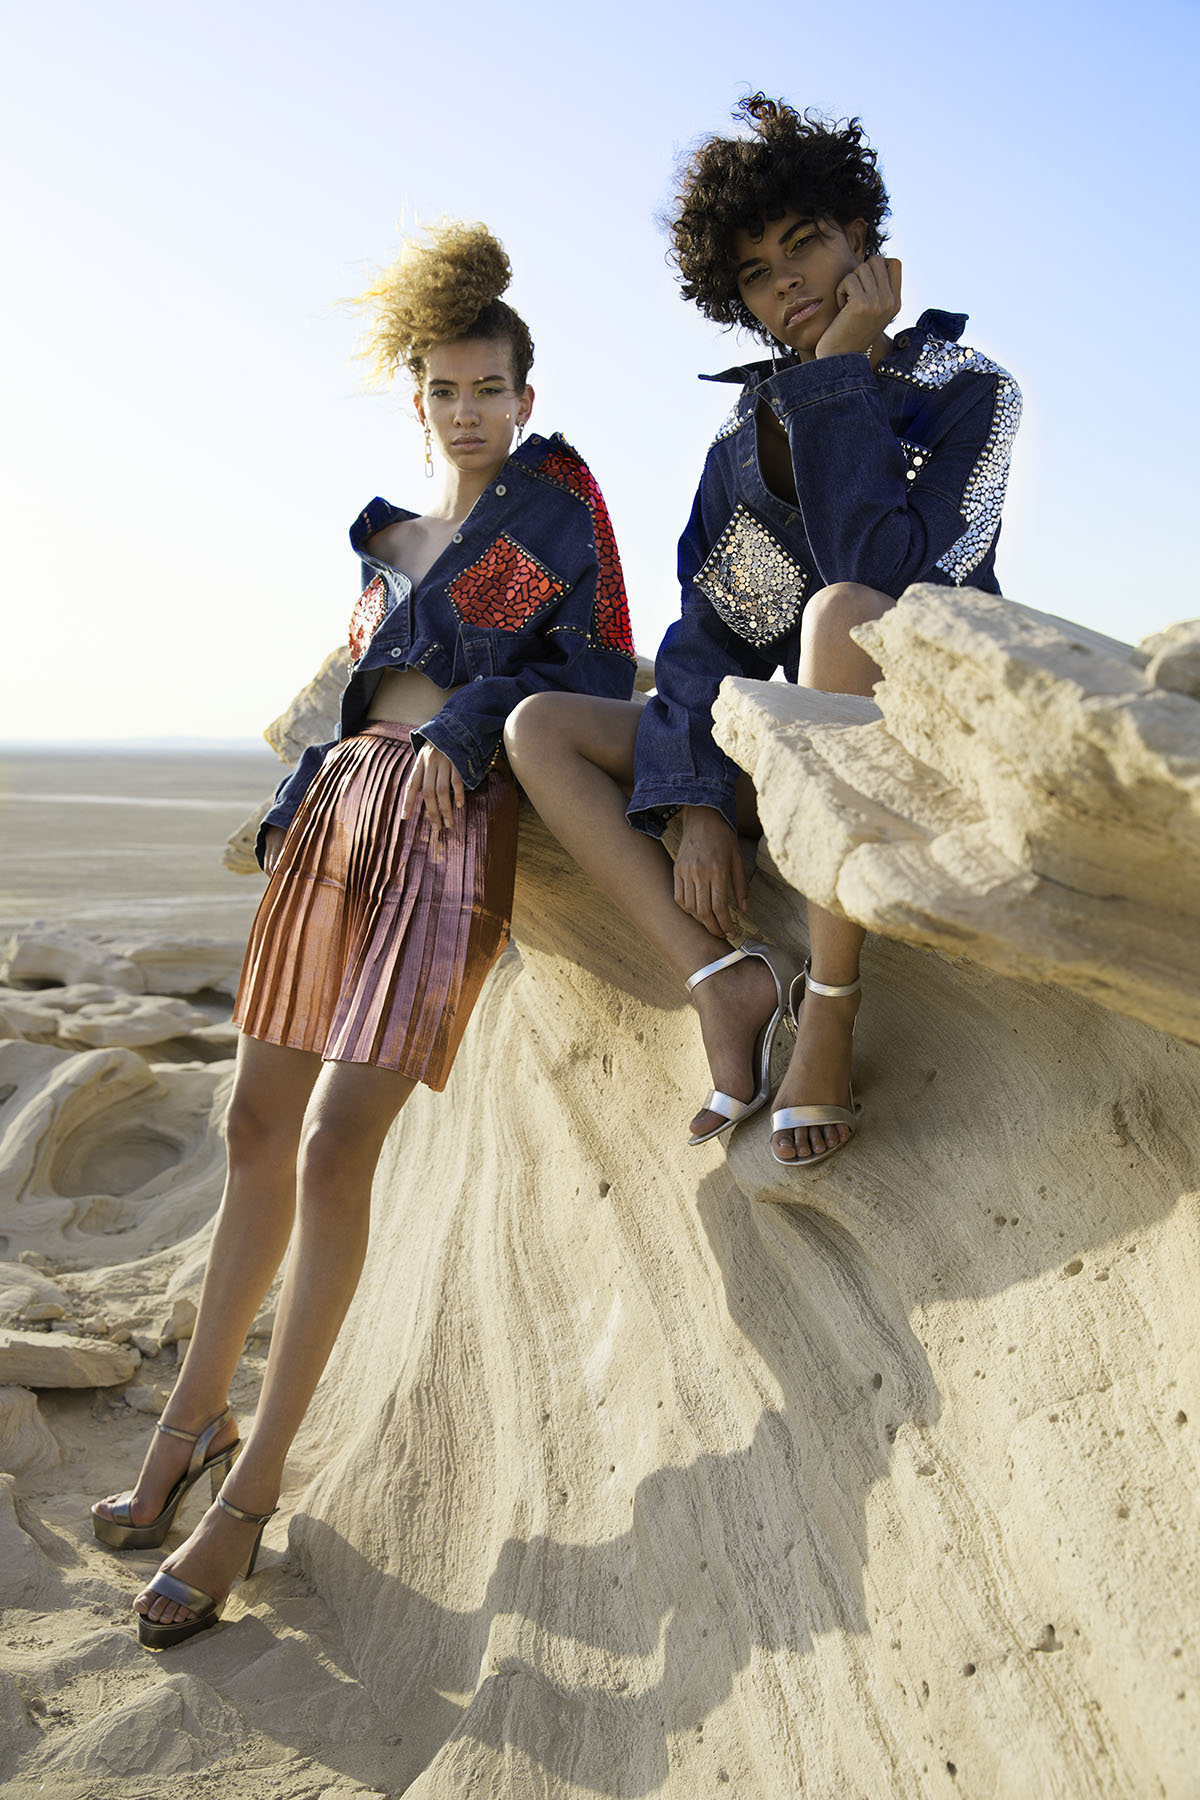 Fashion editorial at Fossil Dunes Abu Dhabi of Atelier Zuhra by Loesje Kessels Fashion Photographer Dubai